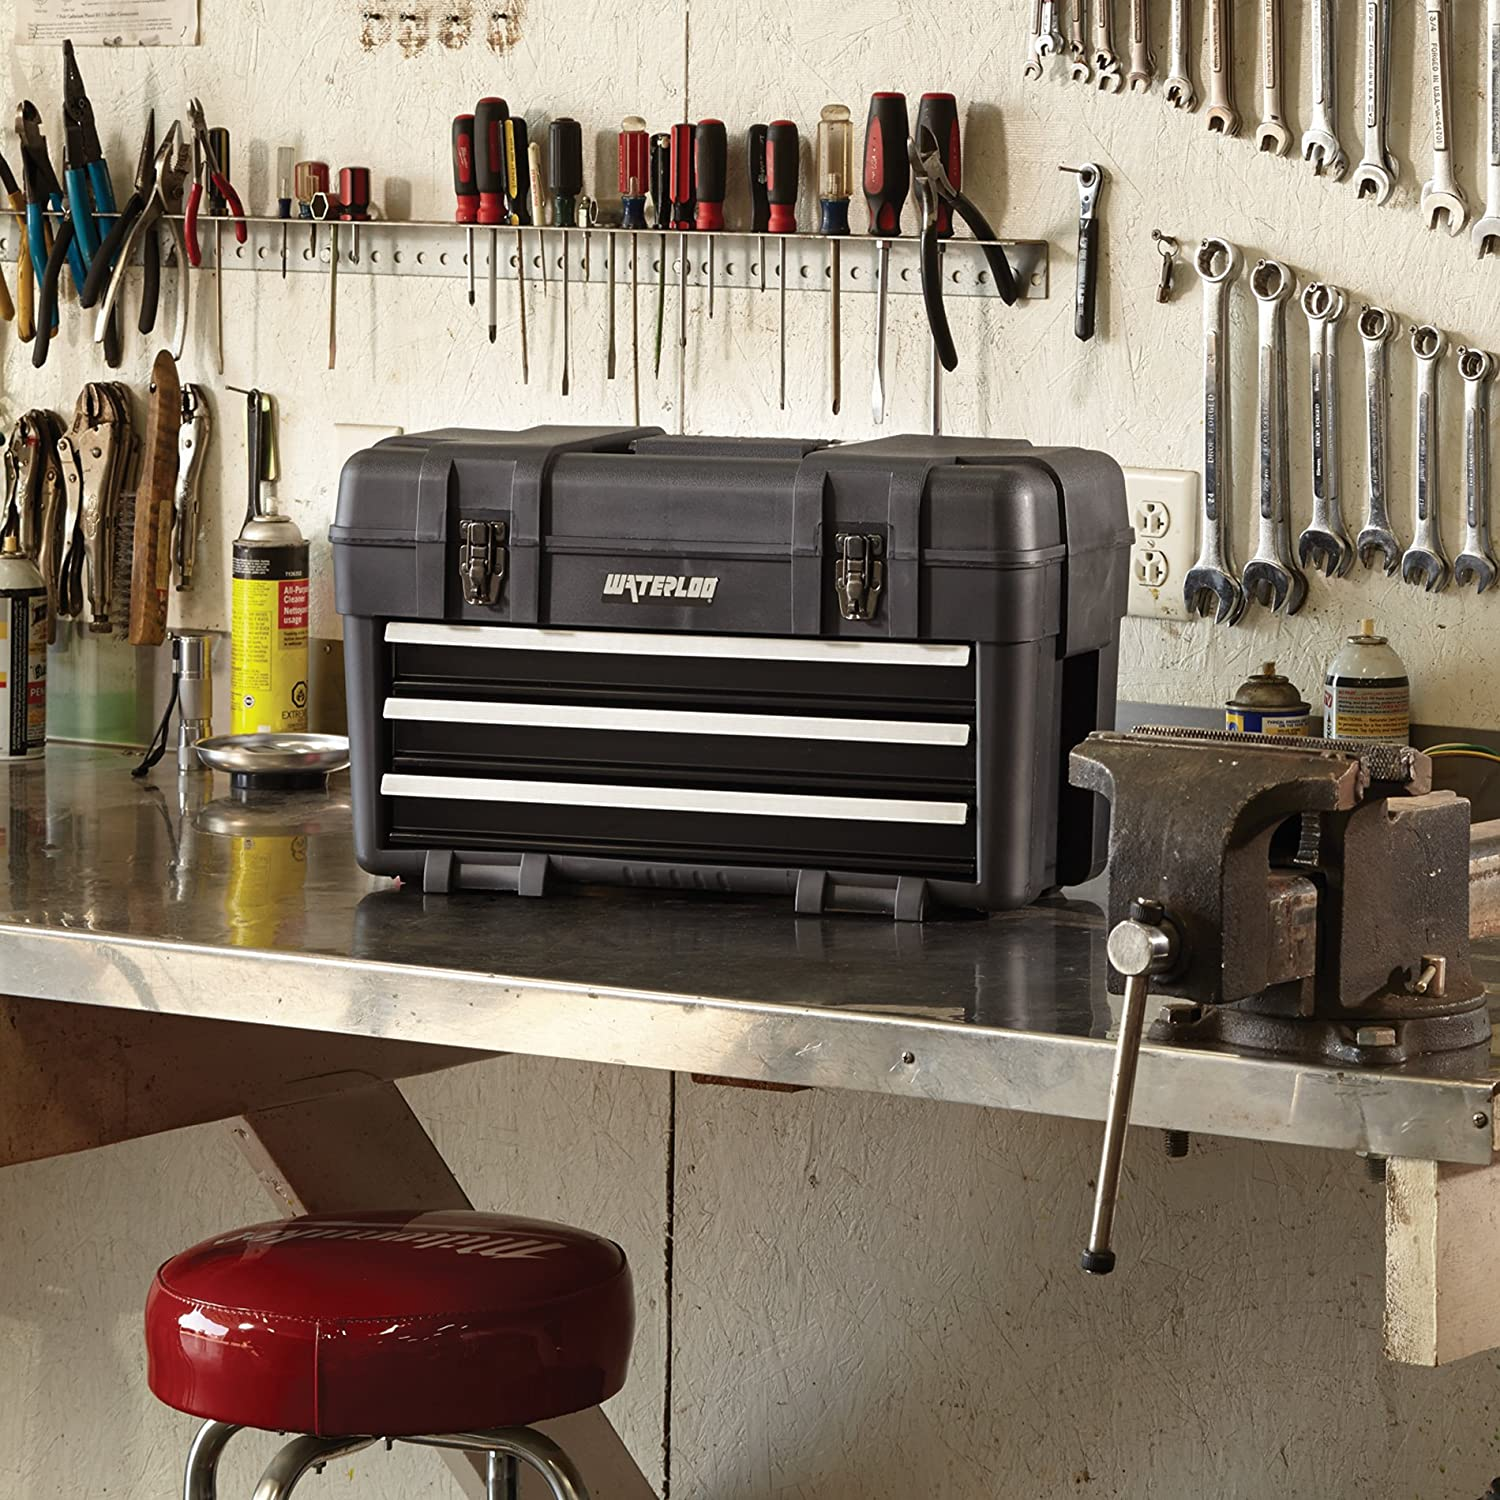 Engineered and Assembled in the USA Designed Waterloo 23 Specialty Series Tool Box with 3-Drawers